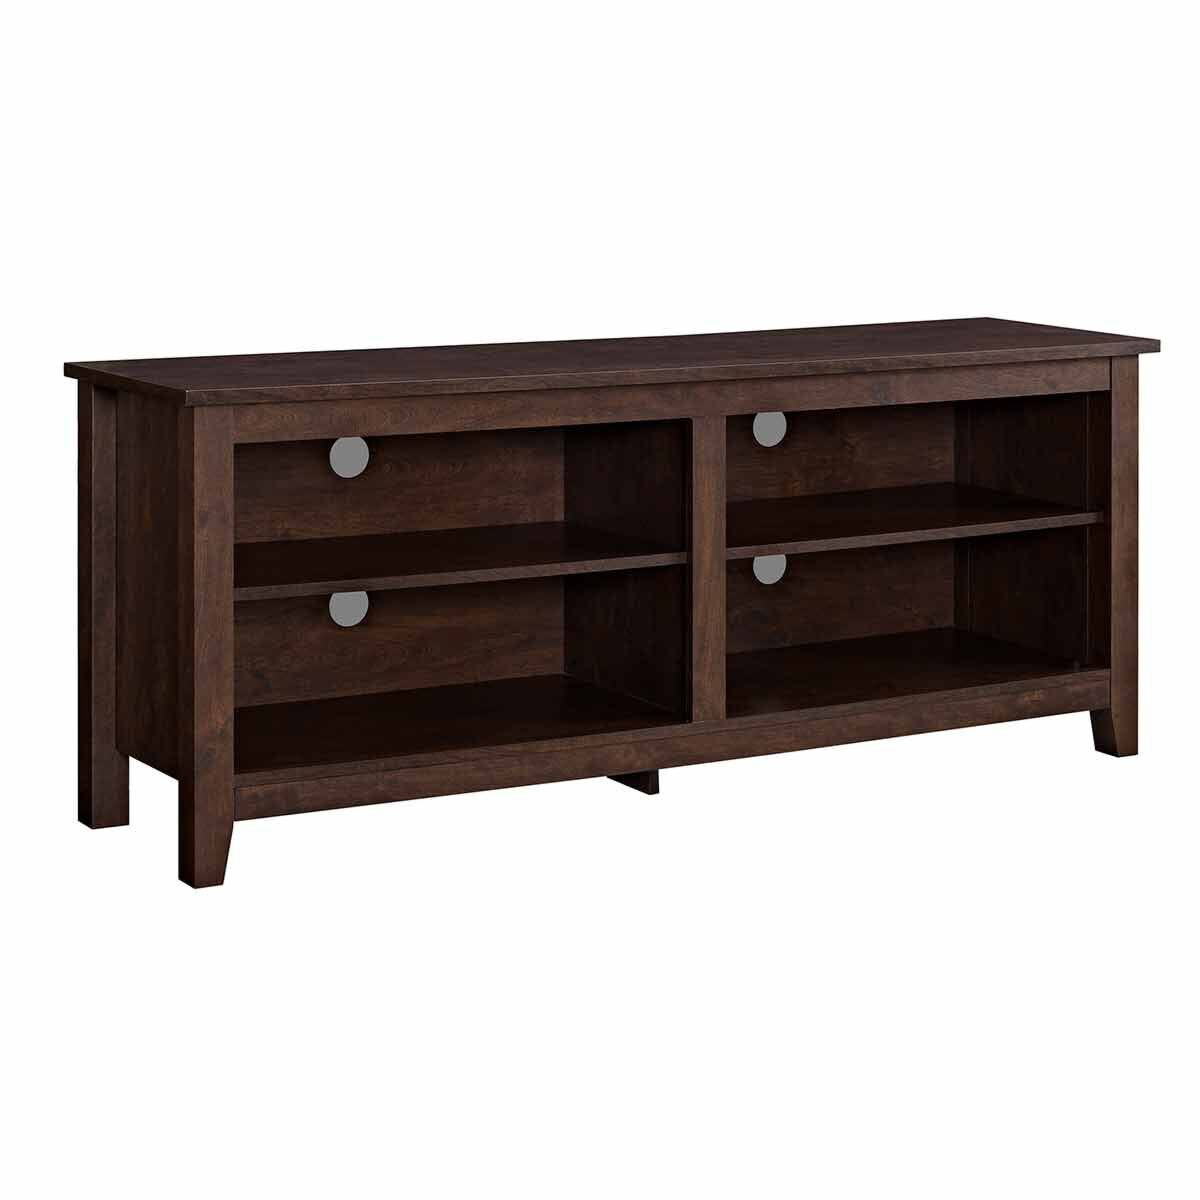 Cosenza Rustic Wood TV Stand Dark Brown